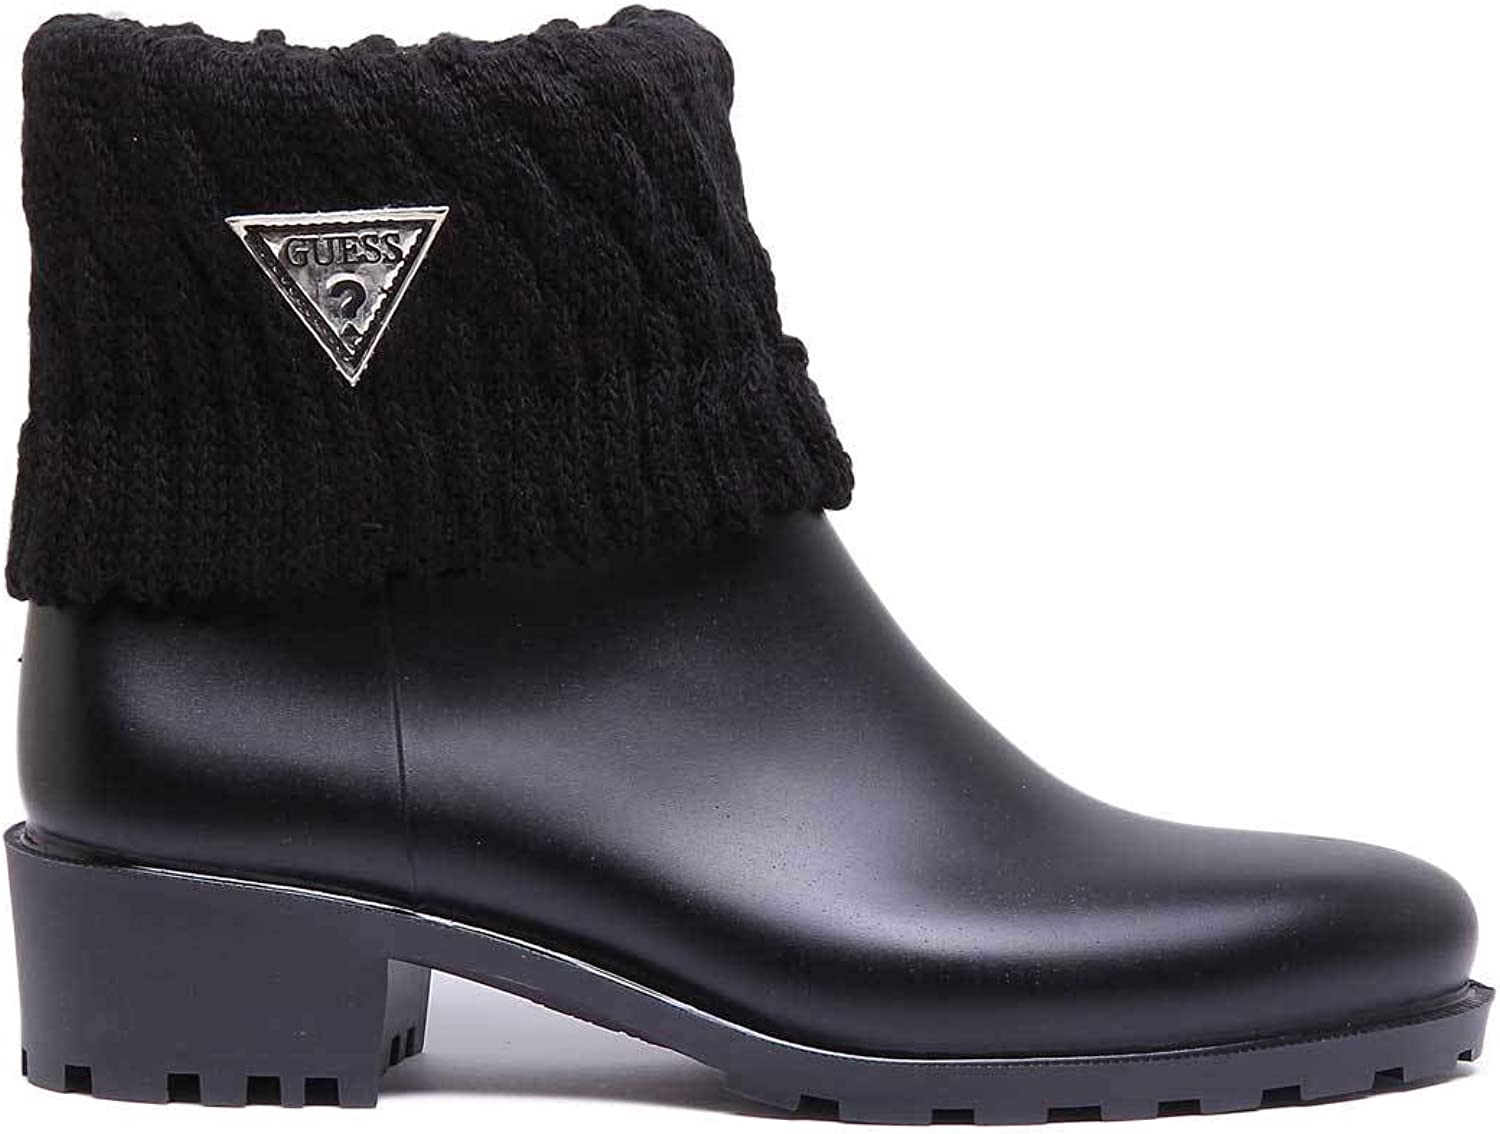 GUESS Venat Rubber Boots in Black